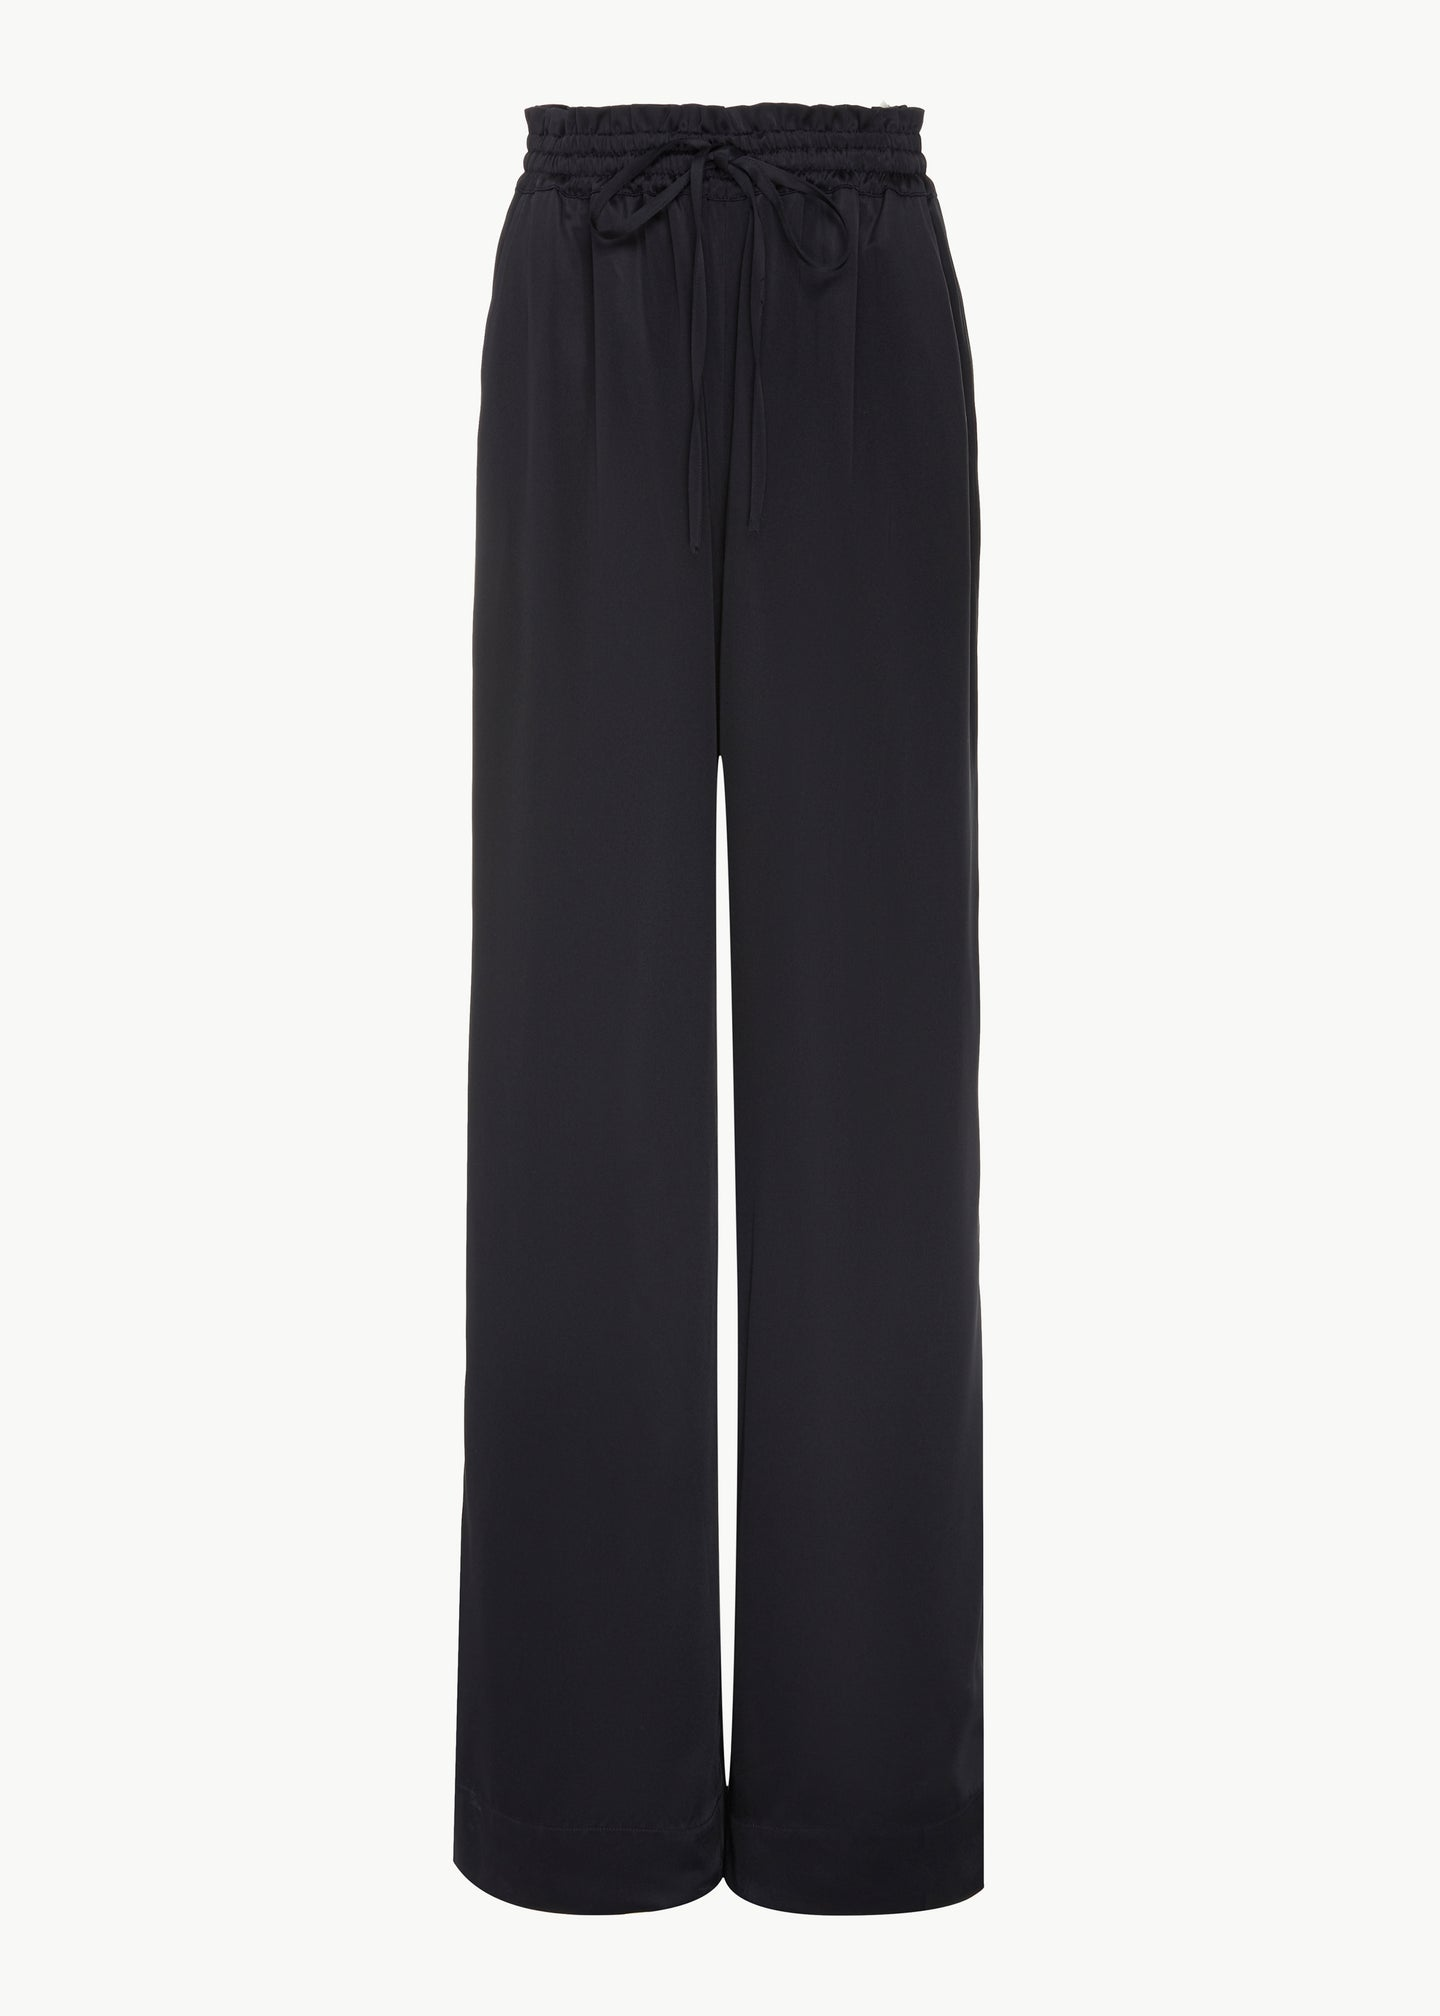 Lounge Pant in Fuji Viscose - Navy - Co Collections